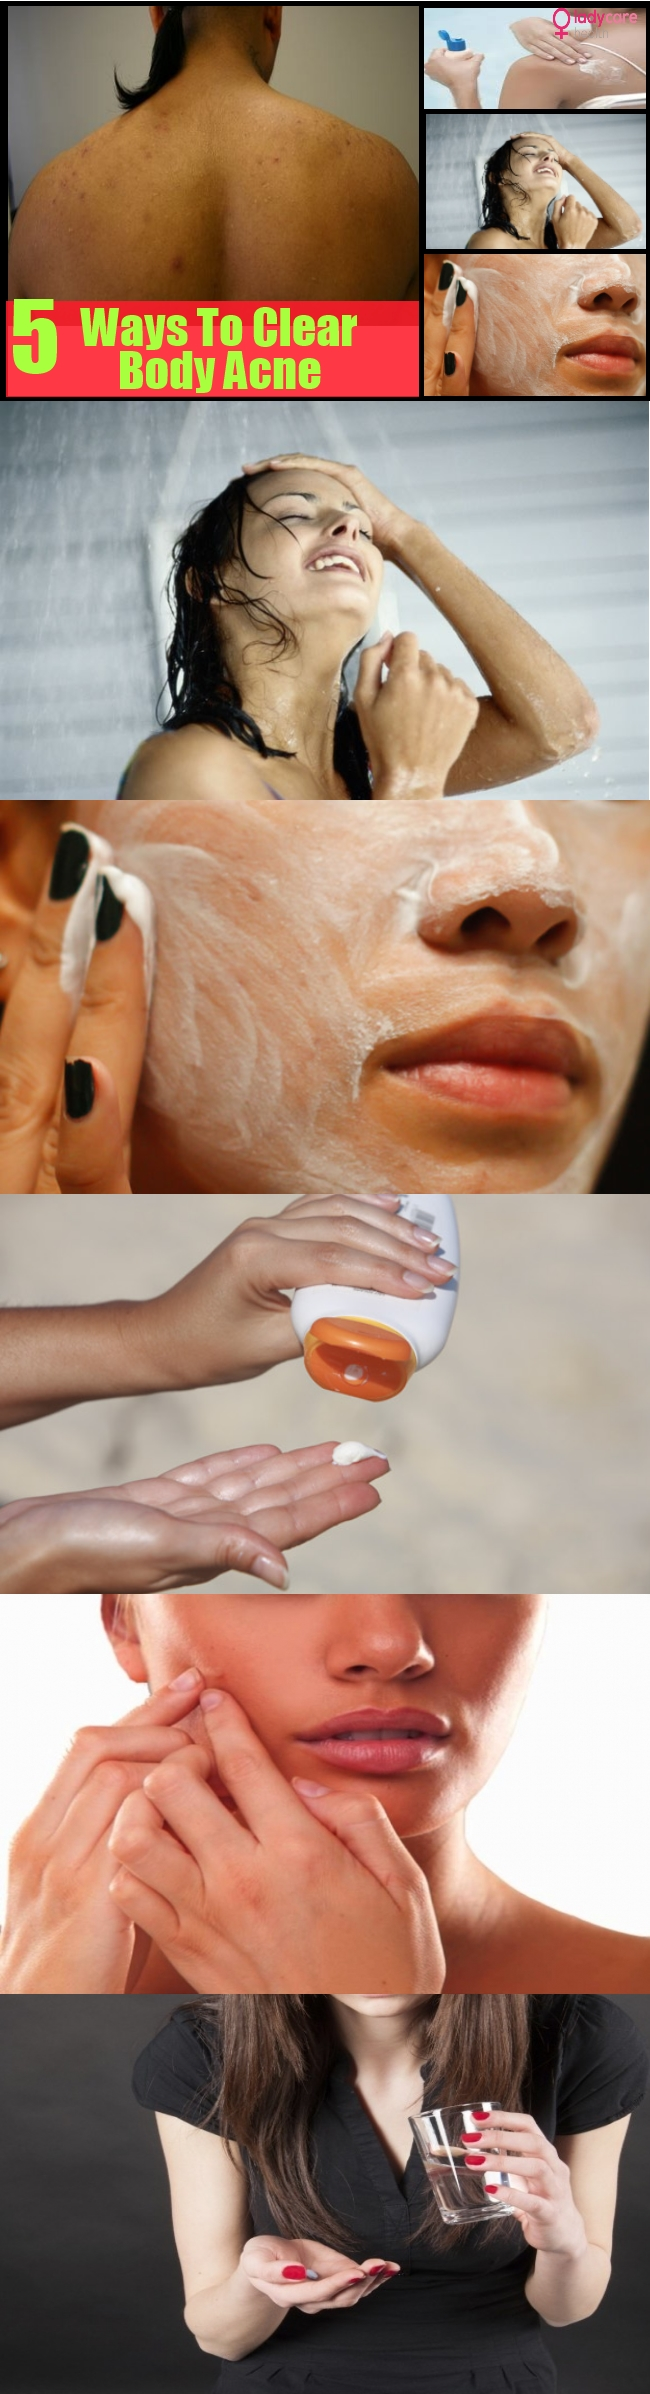 5 Tips On How To Clear Body Acne